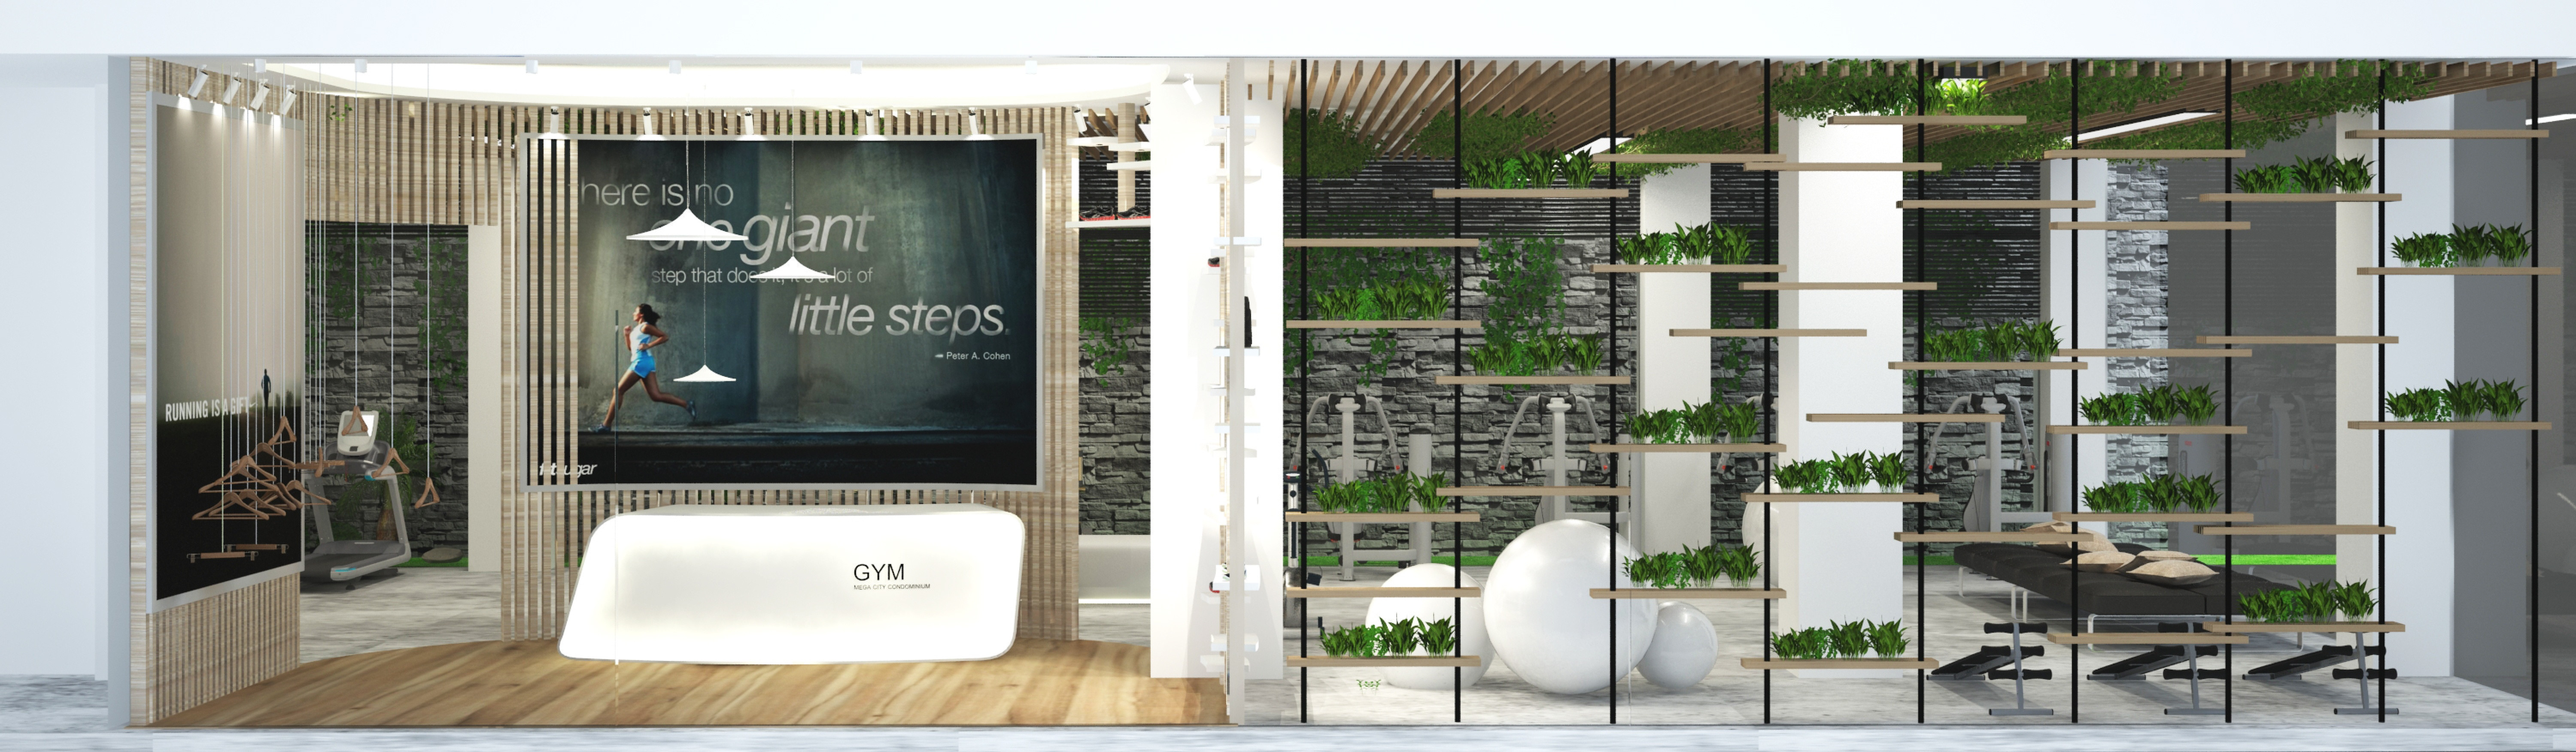 Sustainable Gym room design